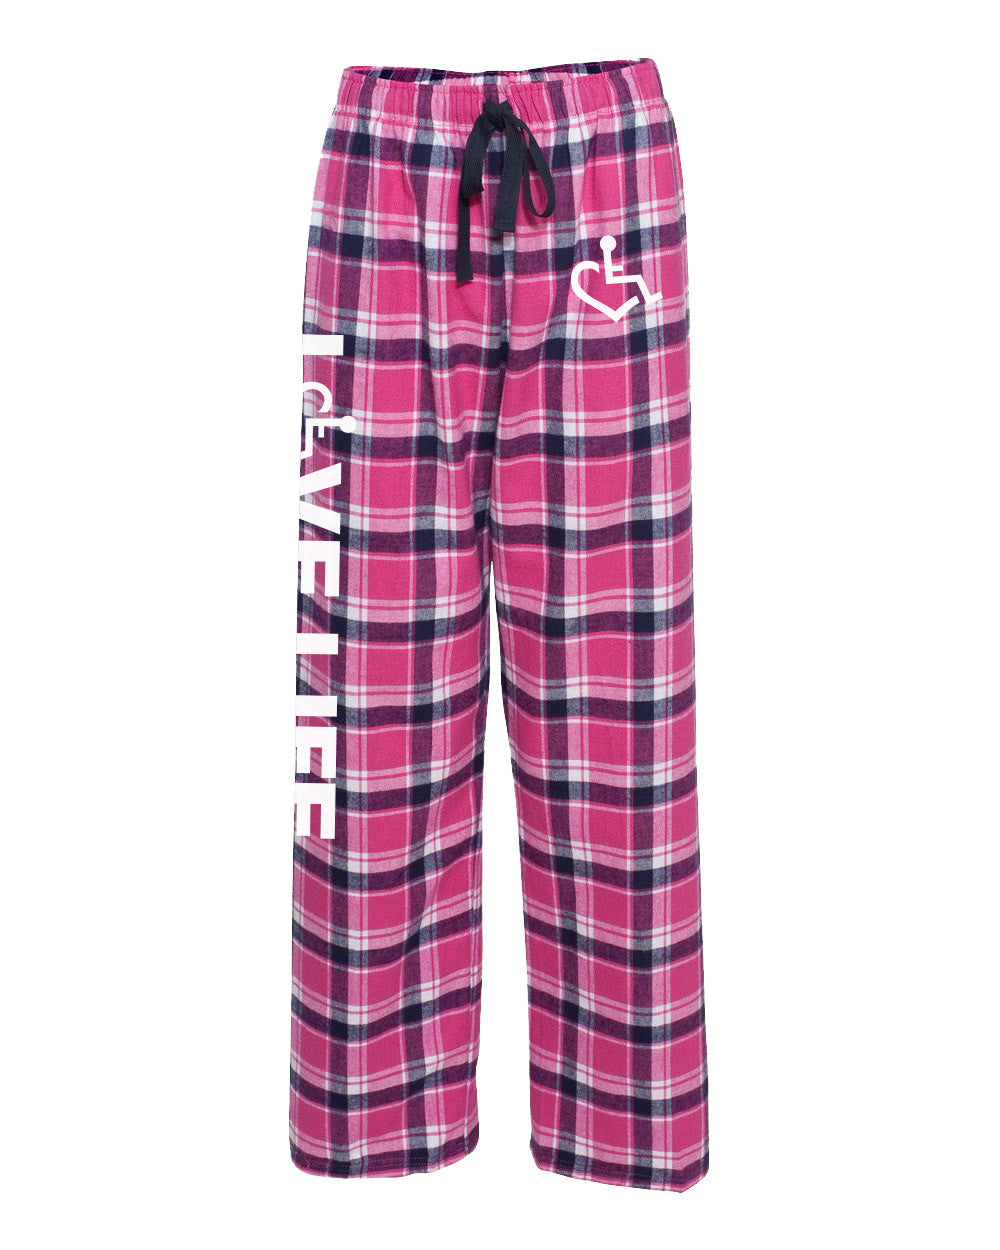 LOVE LIFE Flannel Pajama Pants - New Colors Available!